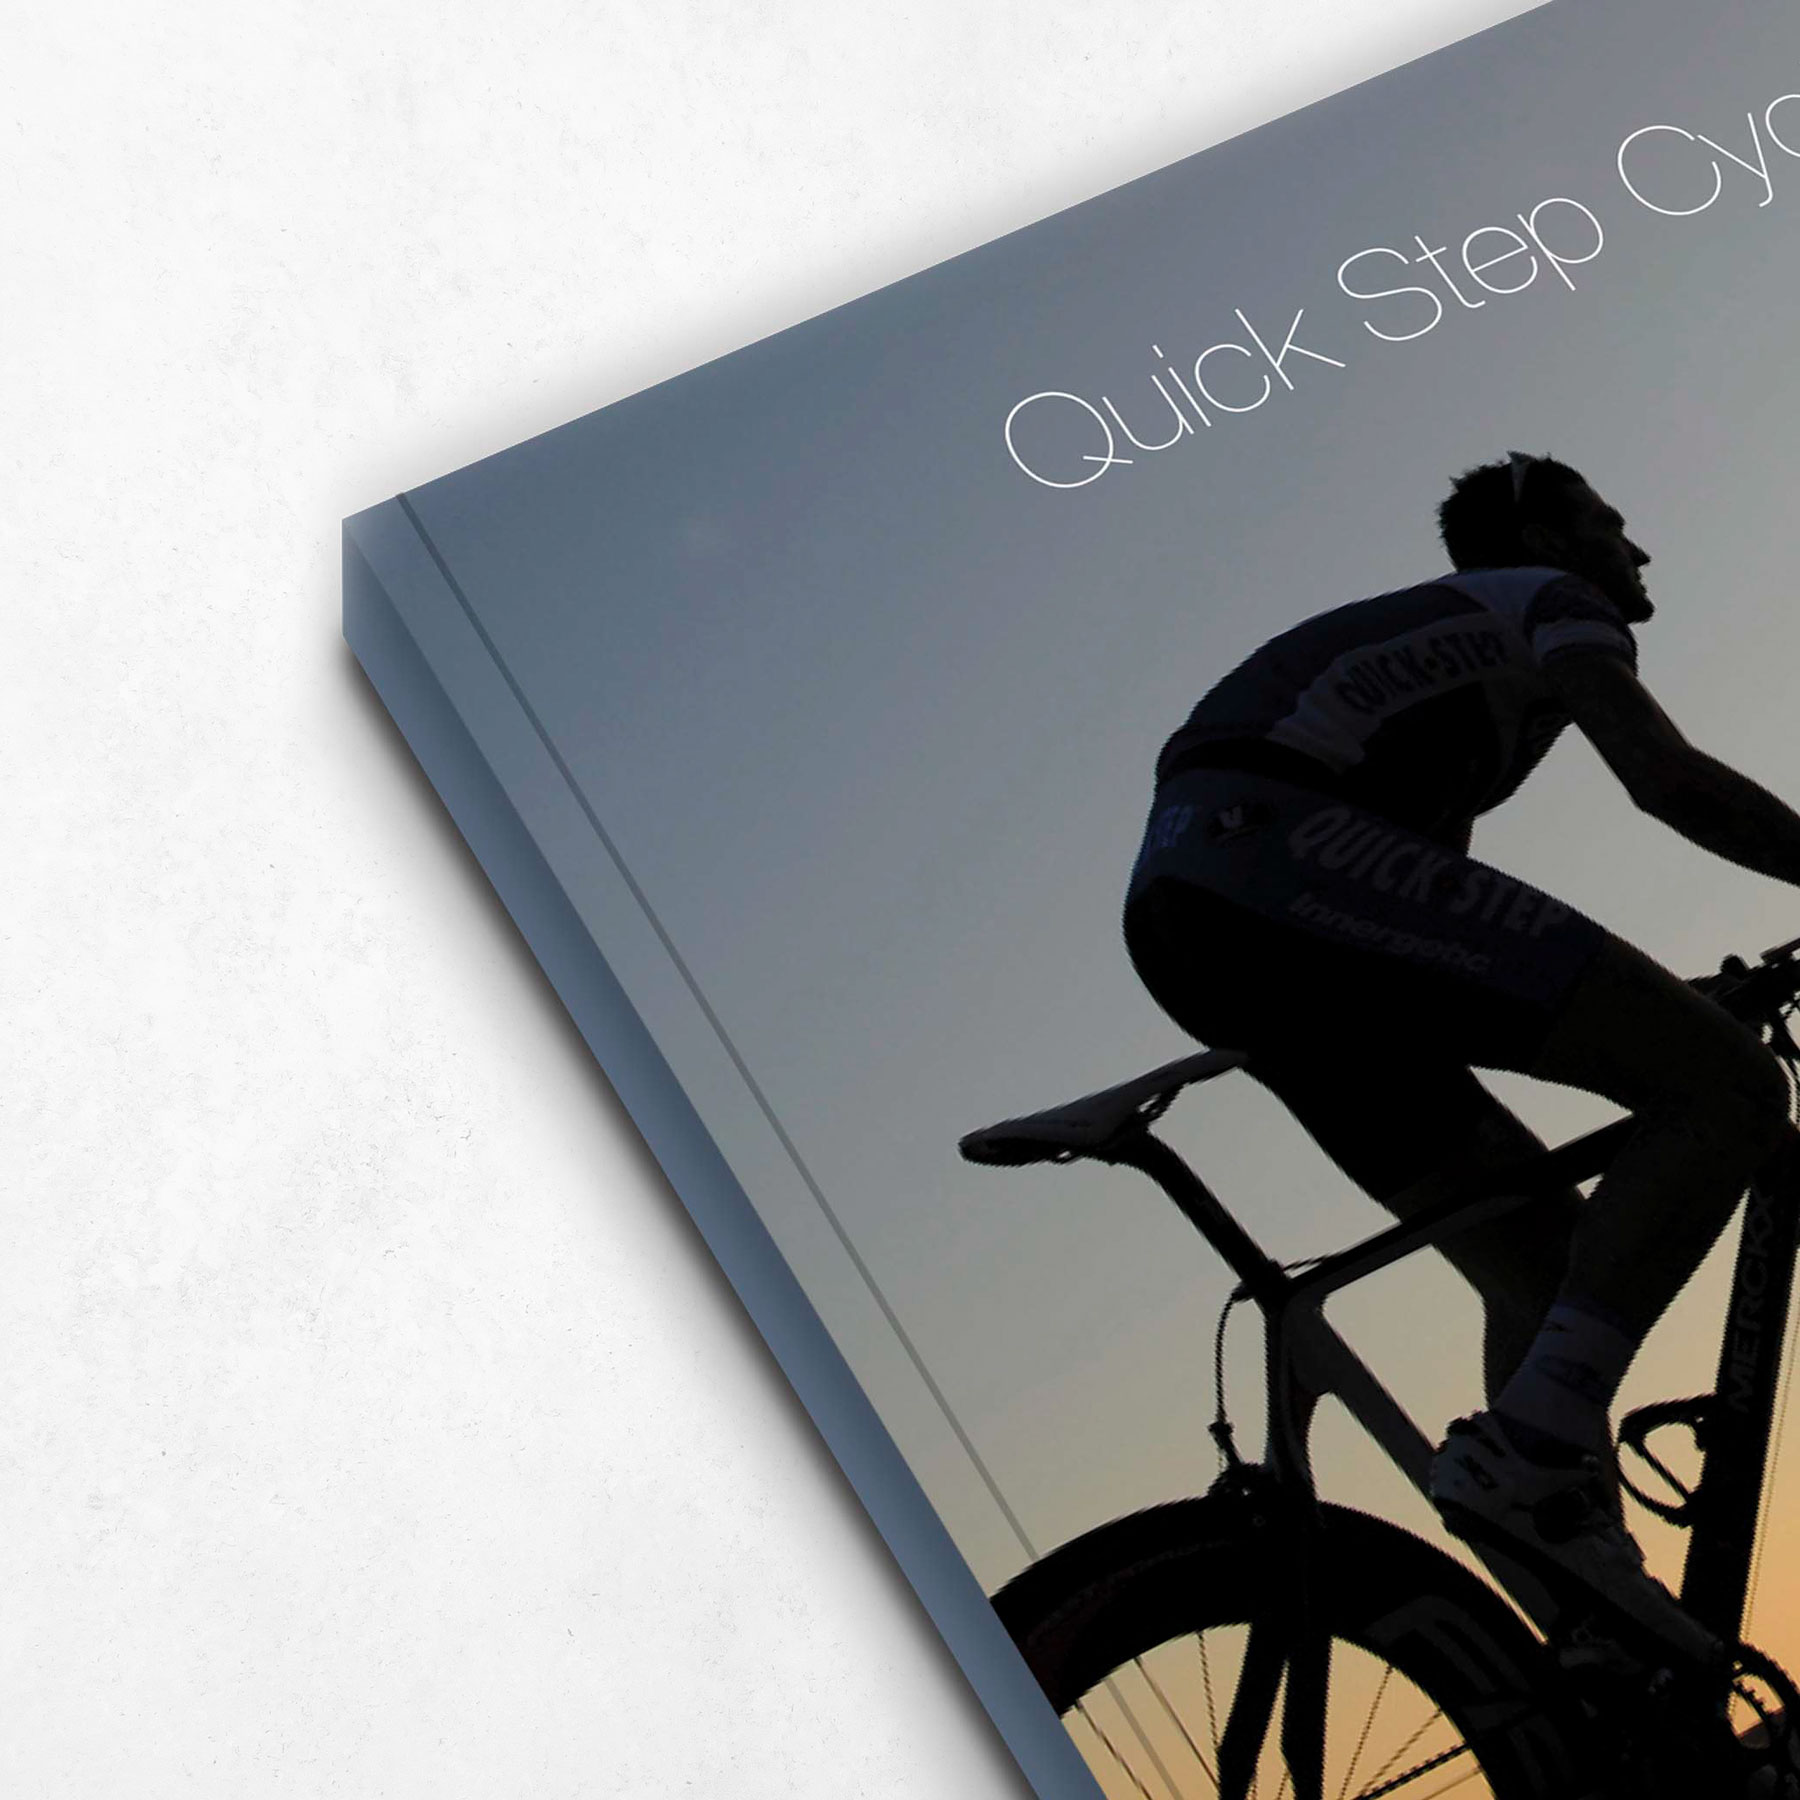 QuickStep cycling